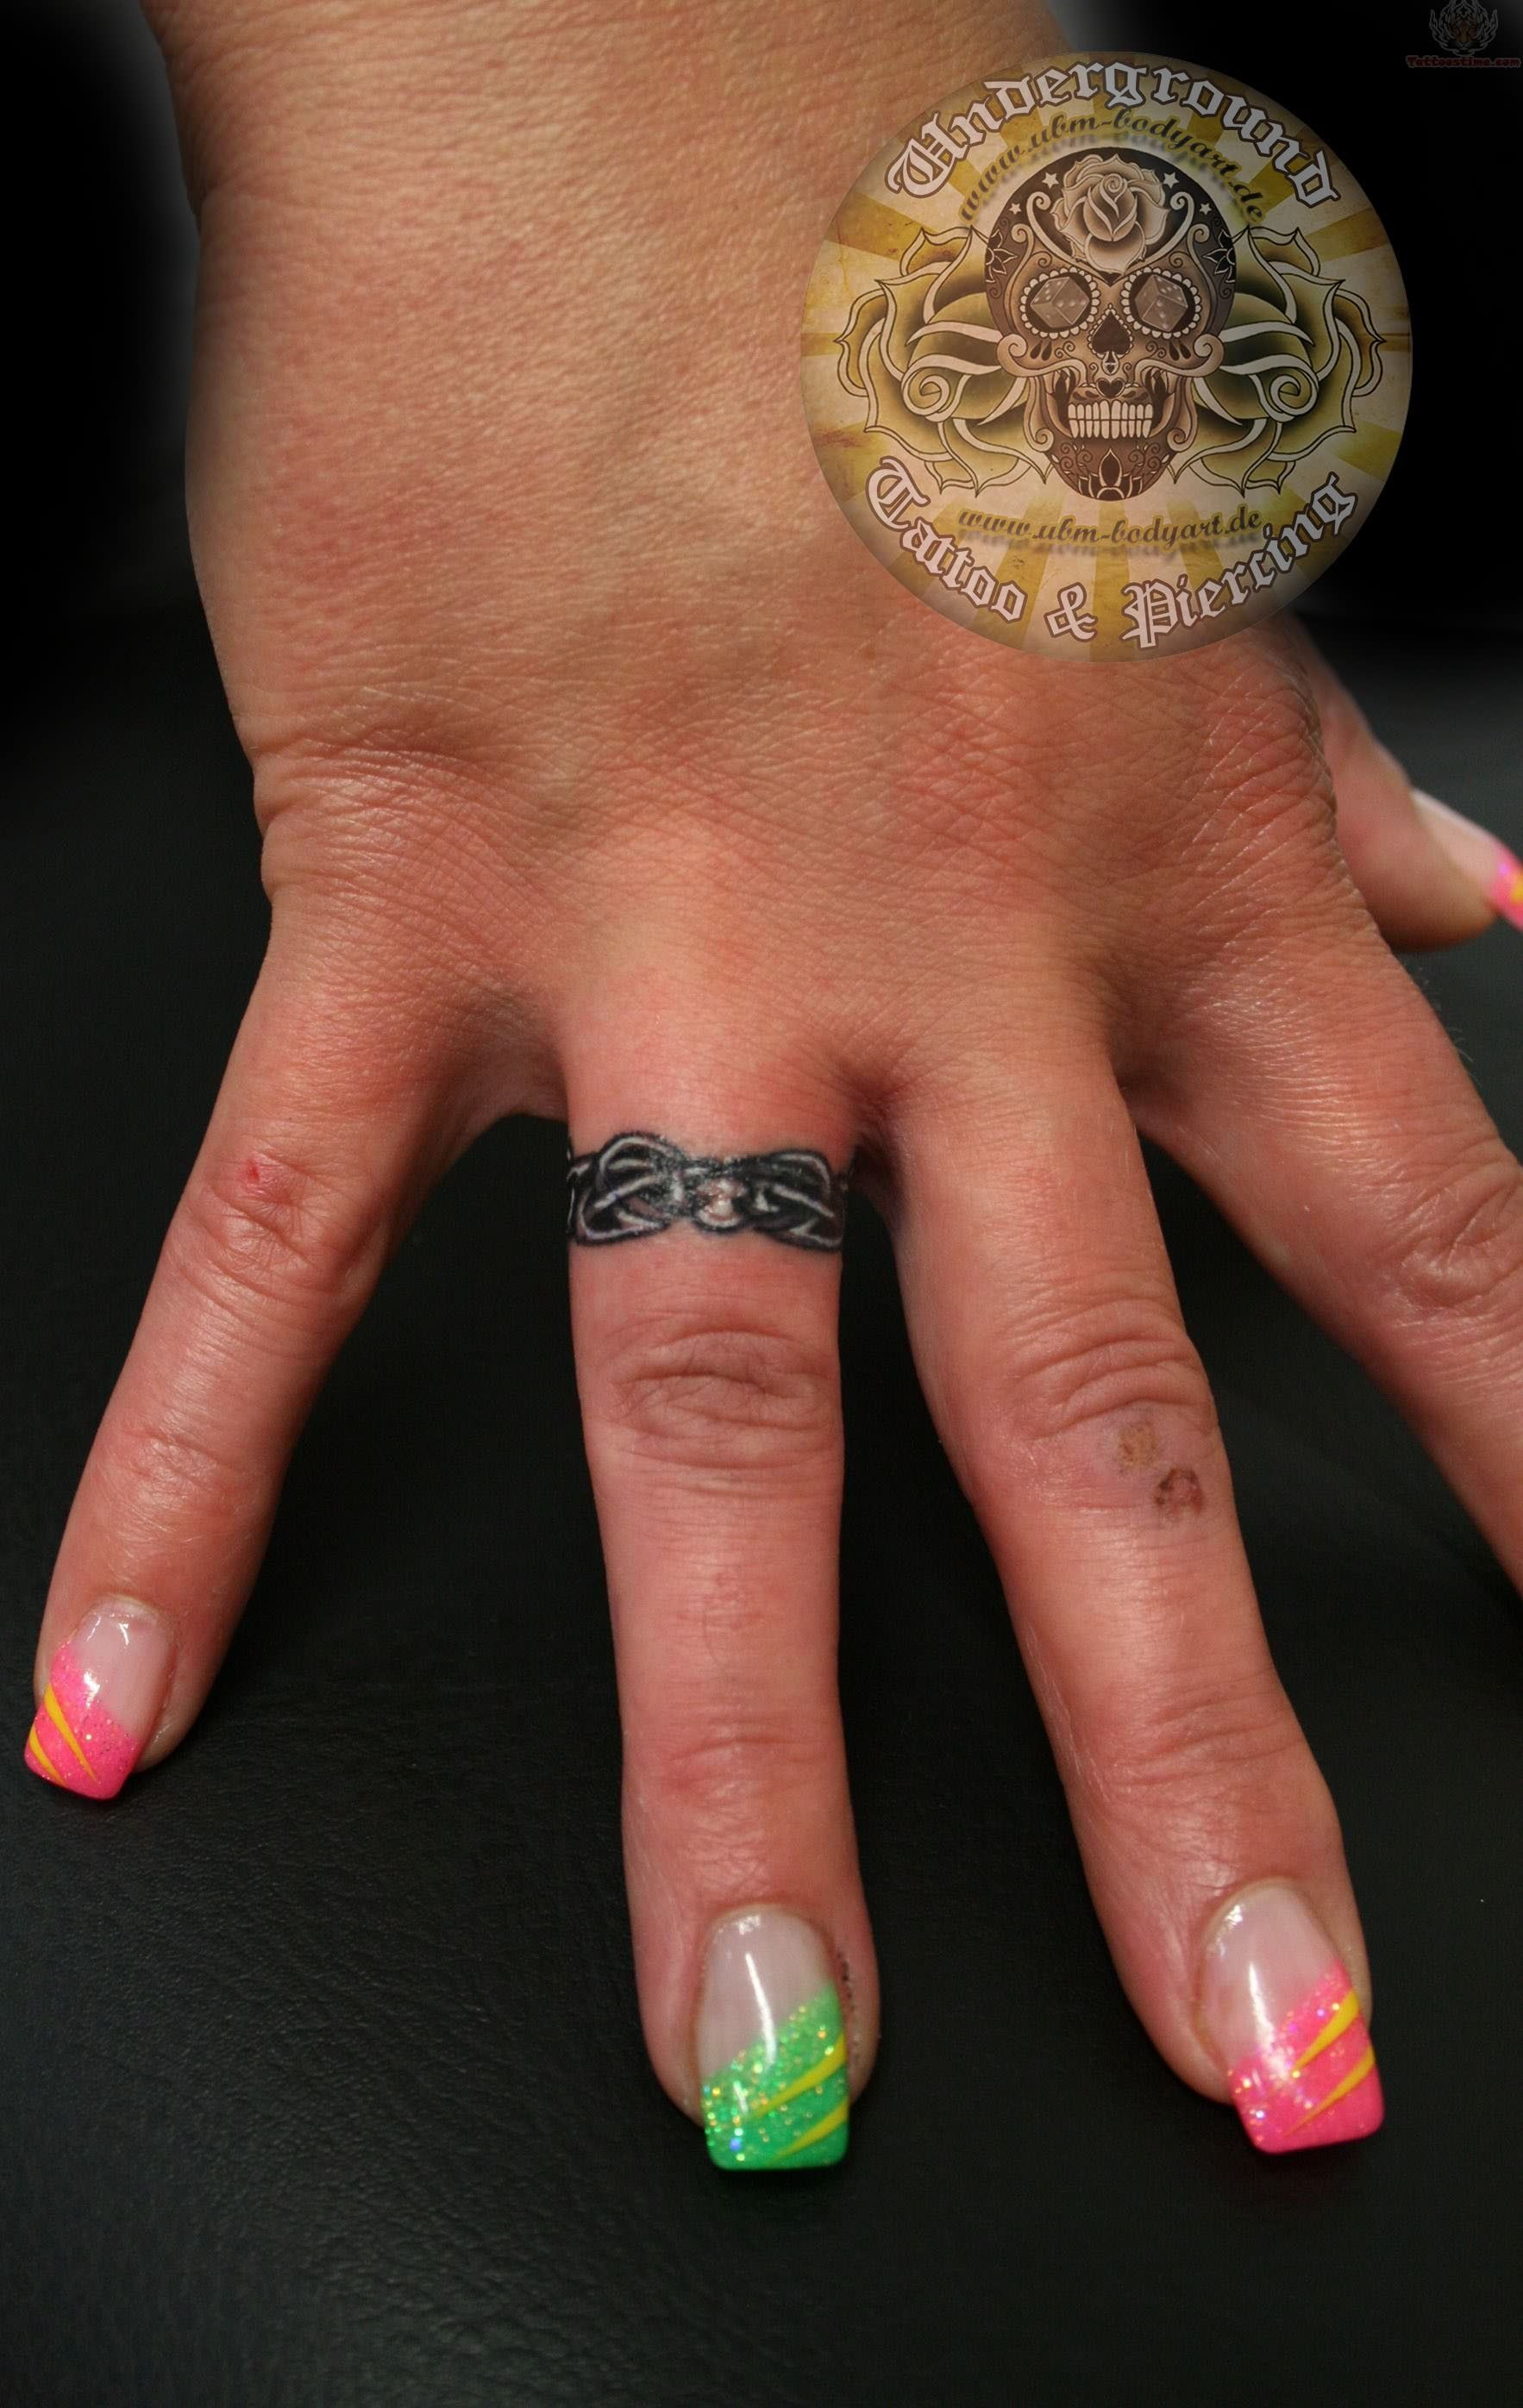 wedding ring tattoo, great idea for guys that don't like